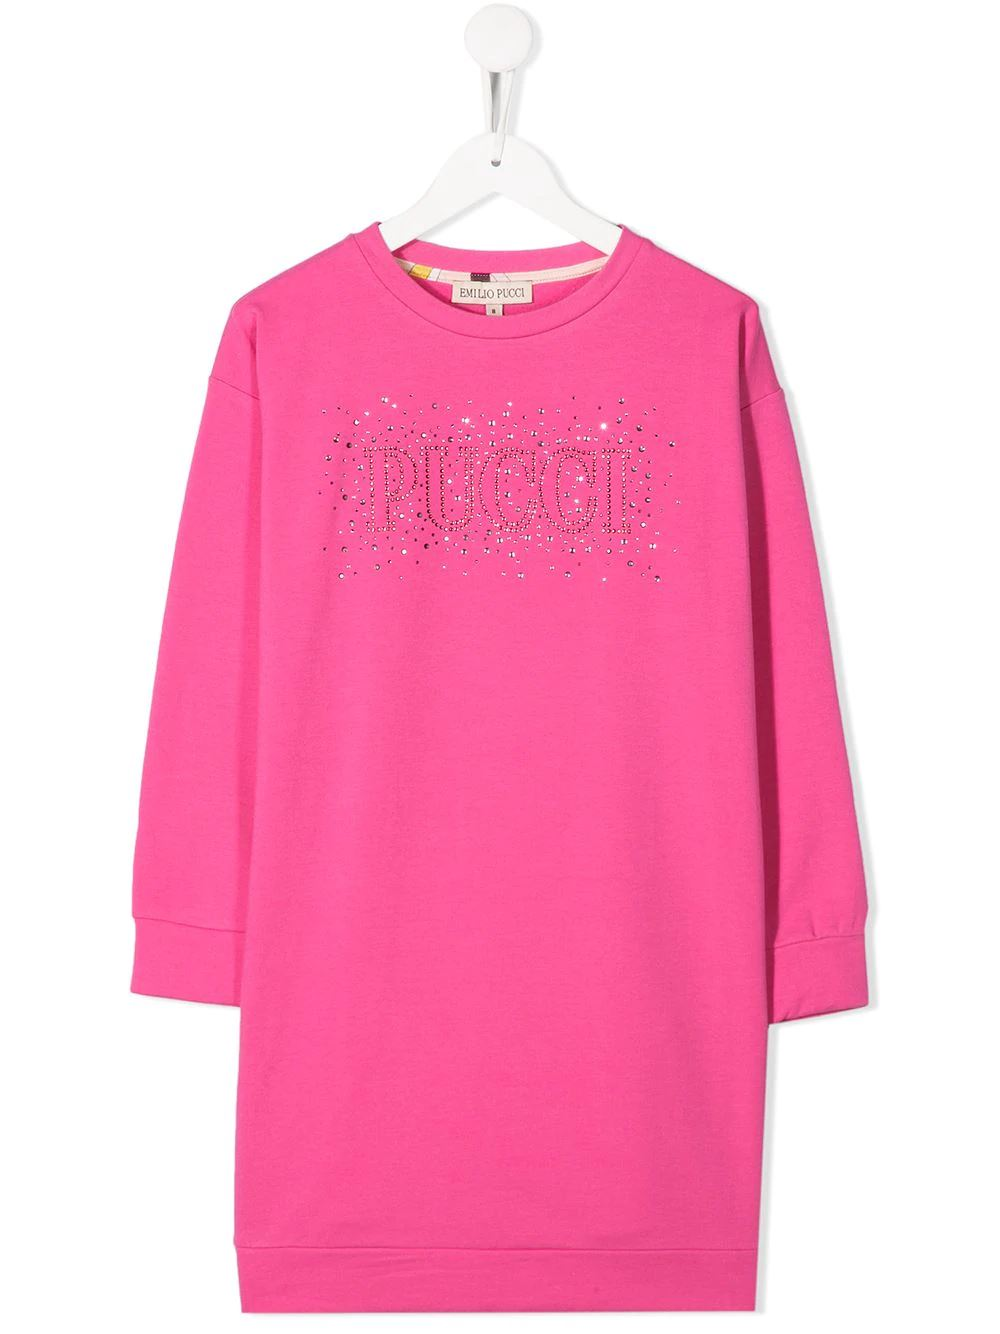 EMILIO PUCCI JUNIOR embellished sweatshirt dress - Maison De Fashion